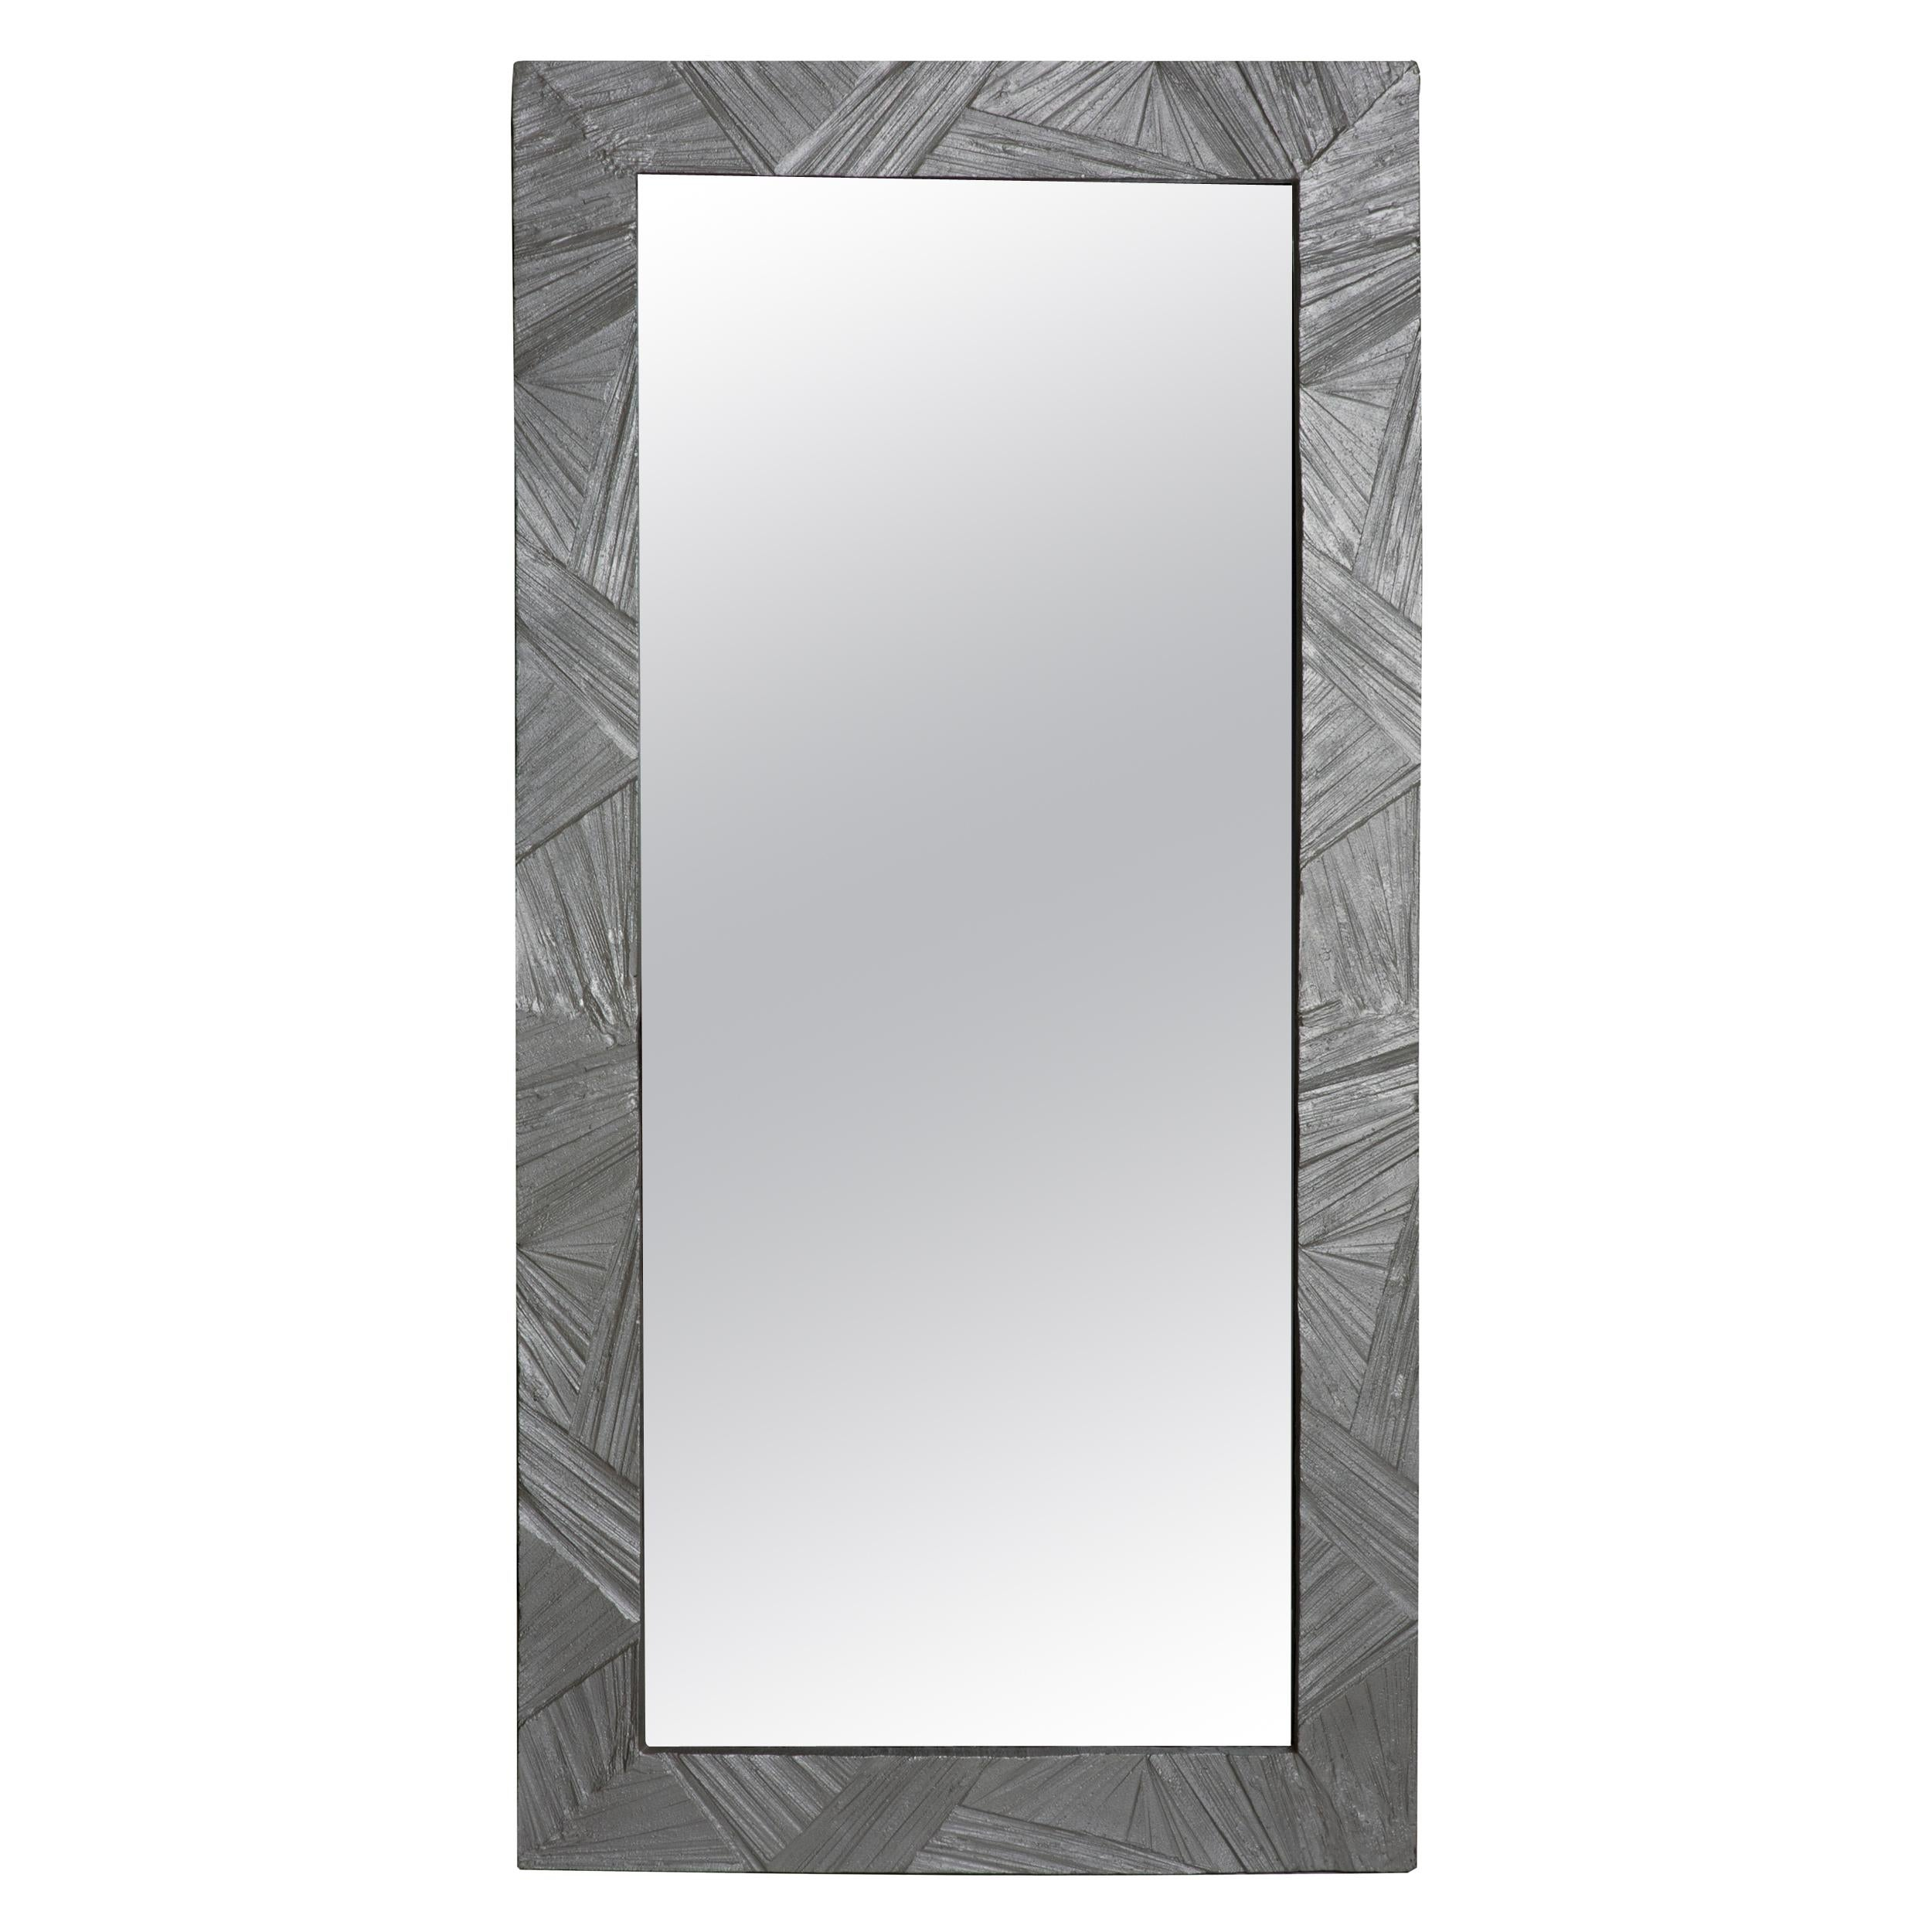 Tall Mirror Mirror with Brulalist Textured Frame, Solace